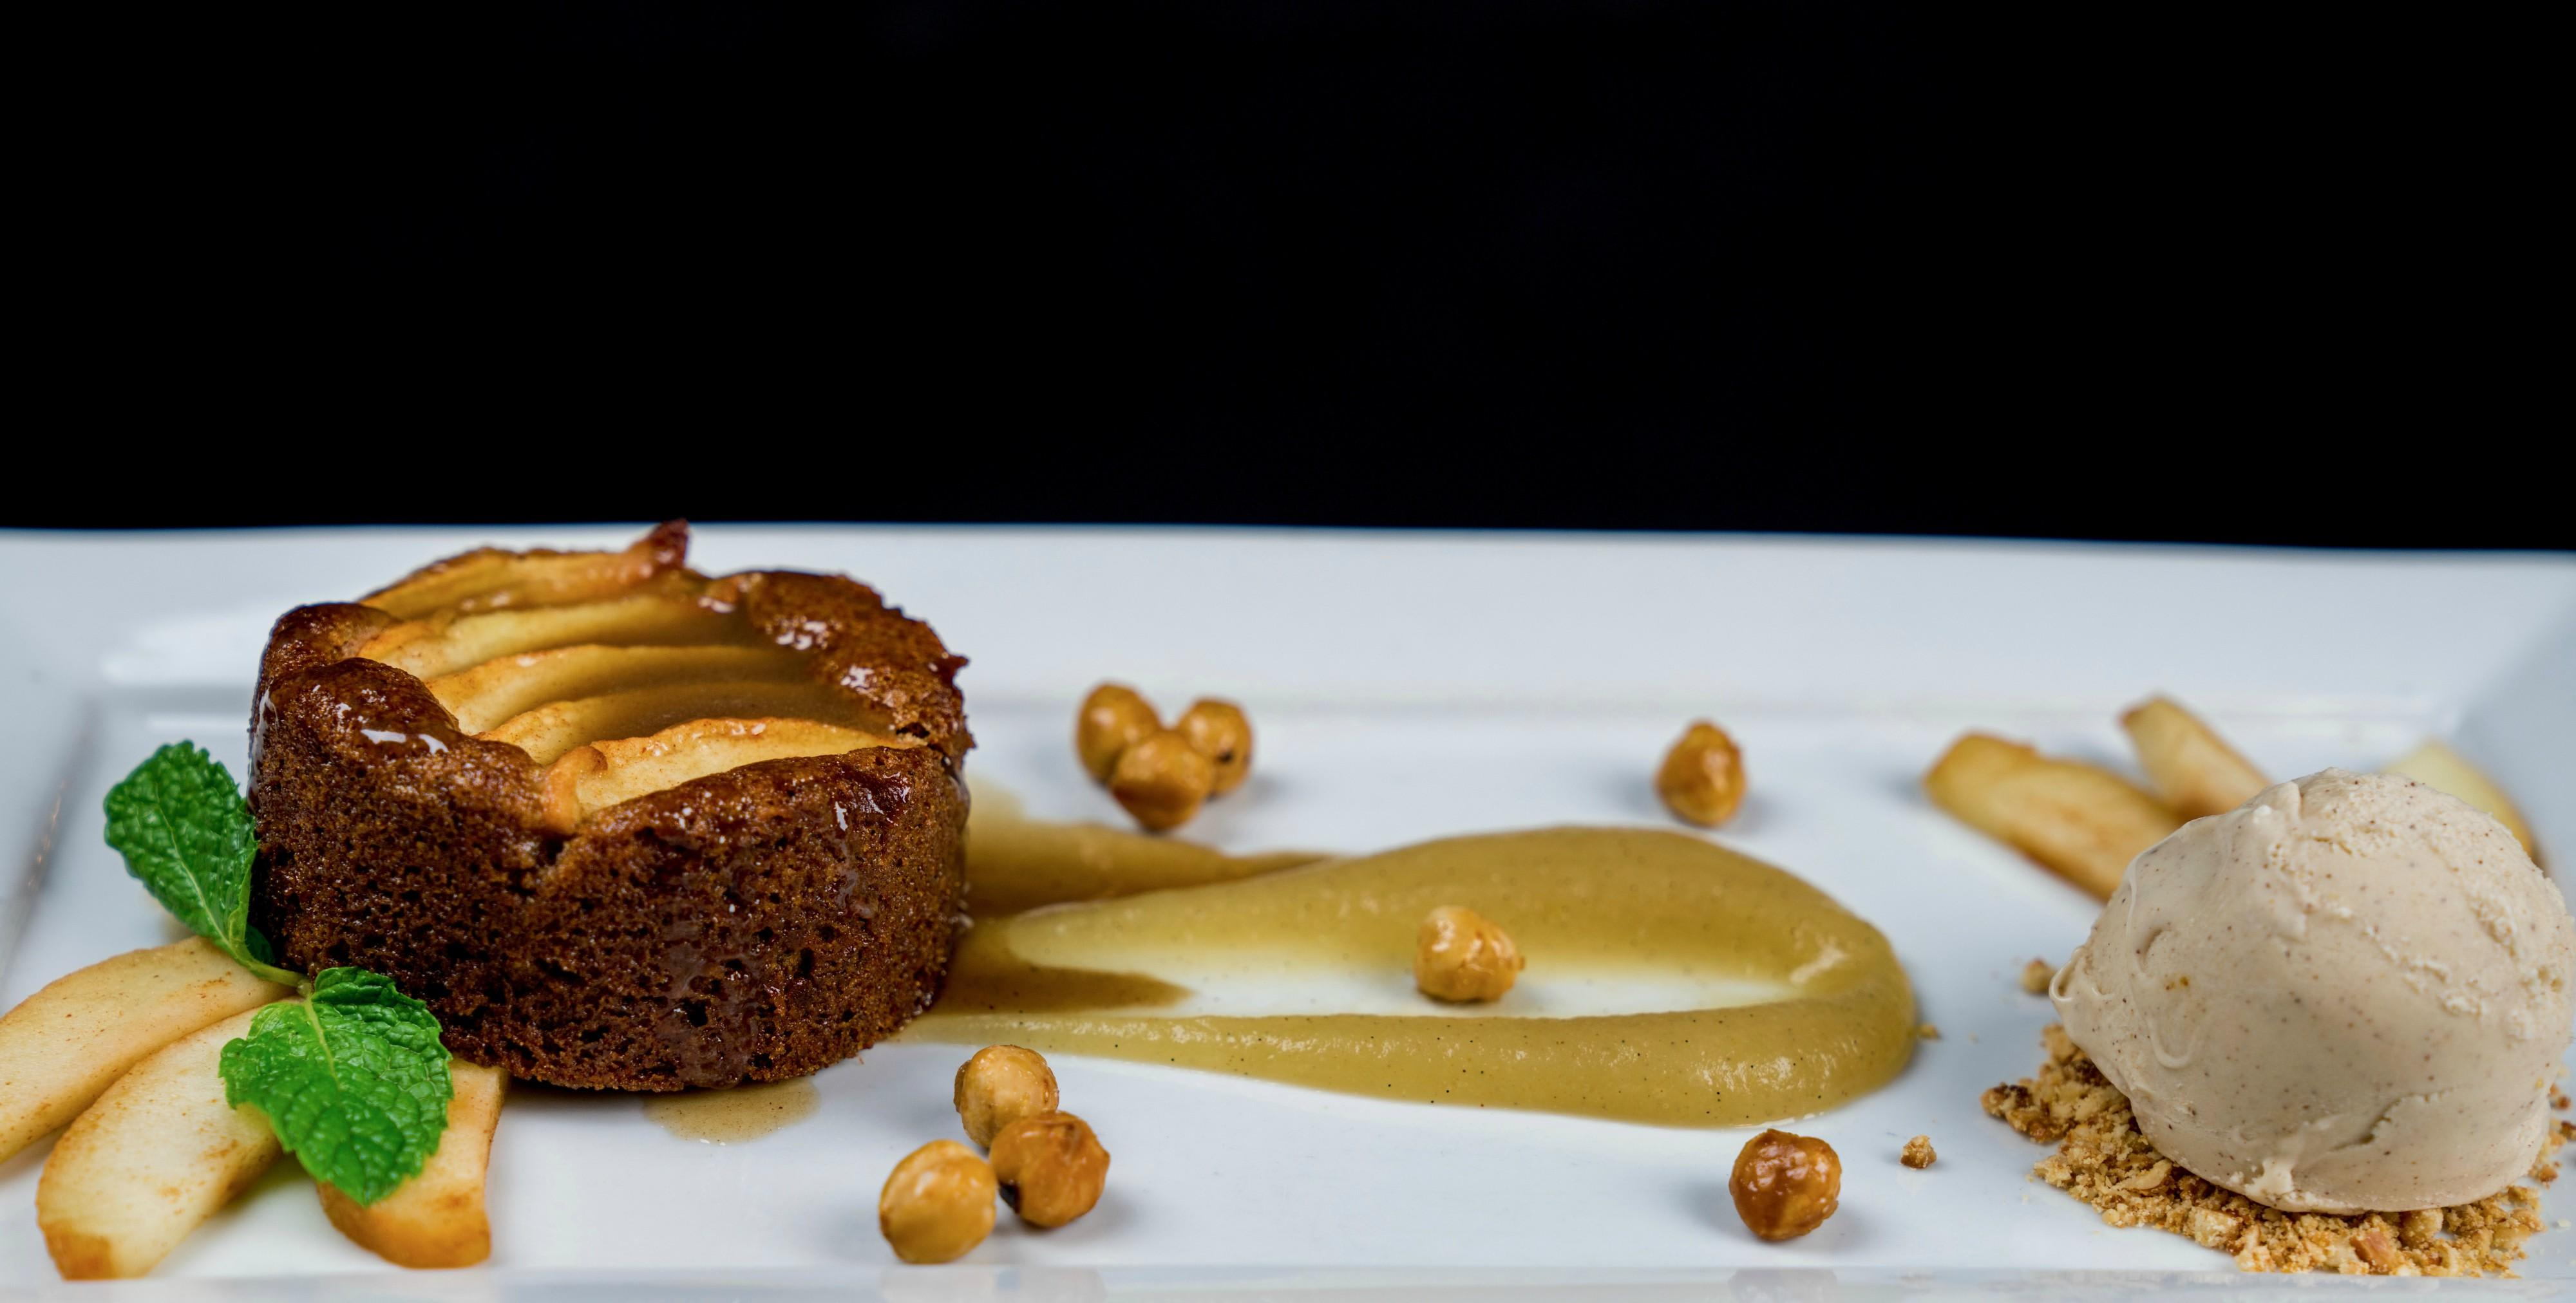 "Roasted Apple Gingerbread Cake Cinnamon caramel, agave glazed hazelnuts, green apple puree, house-made hazelnut soy milk ""ice cream"" Vegan & gluten free at Tonto Bar & Grill"